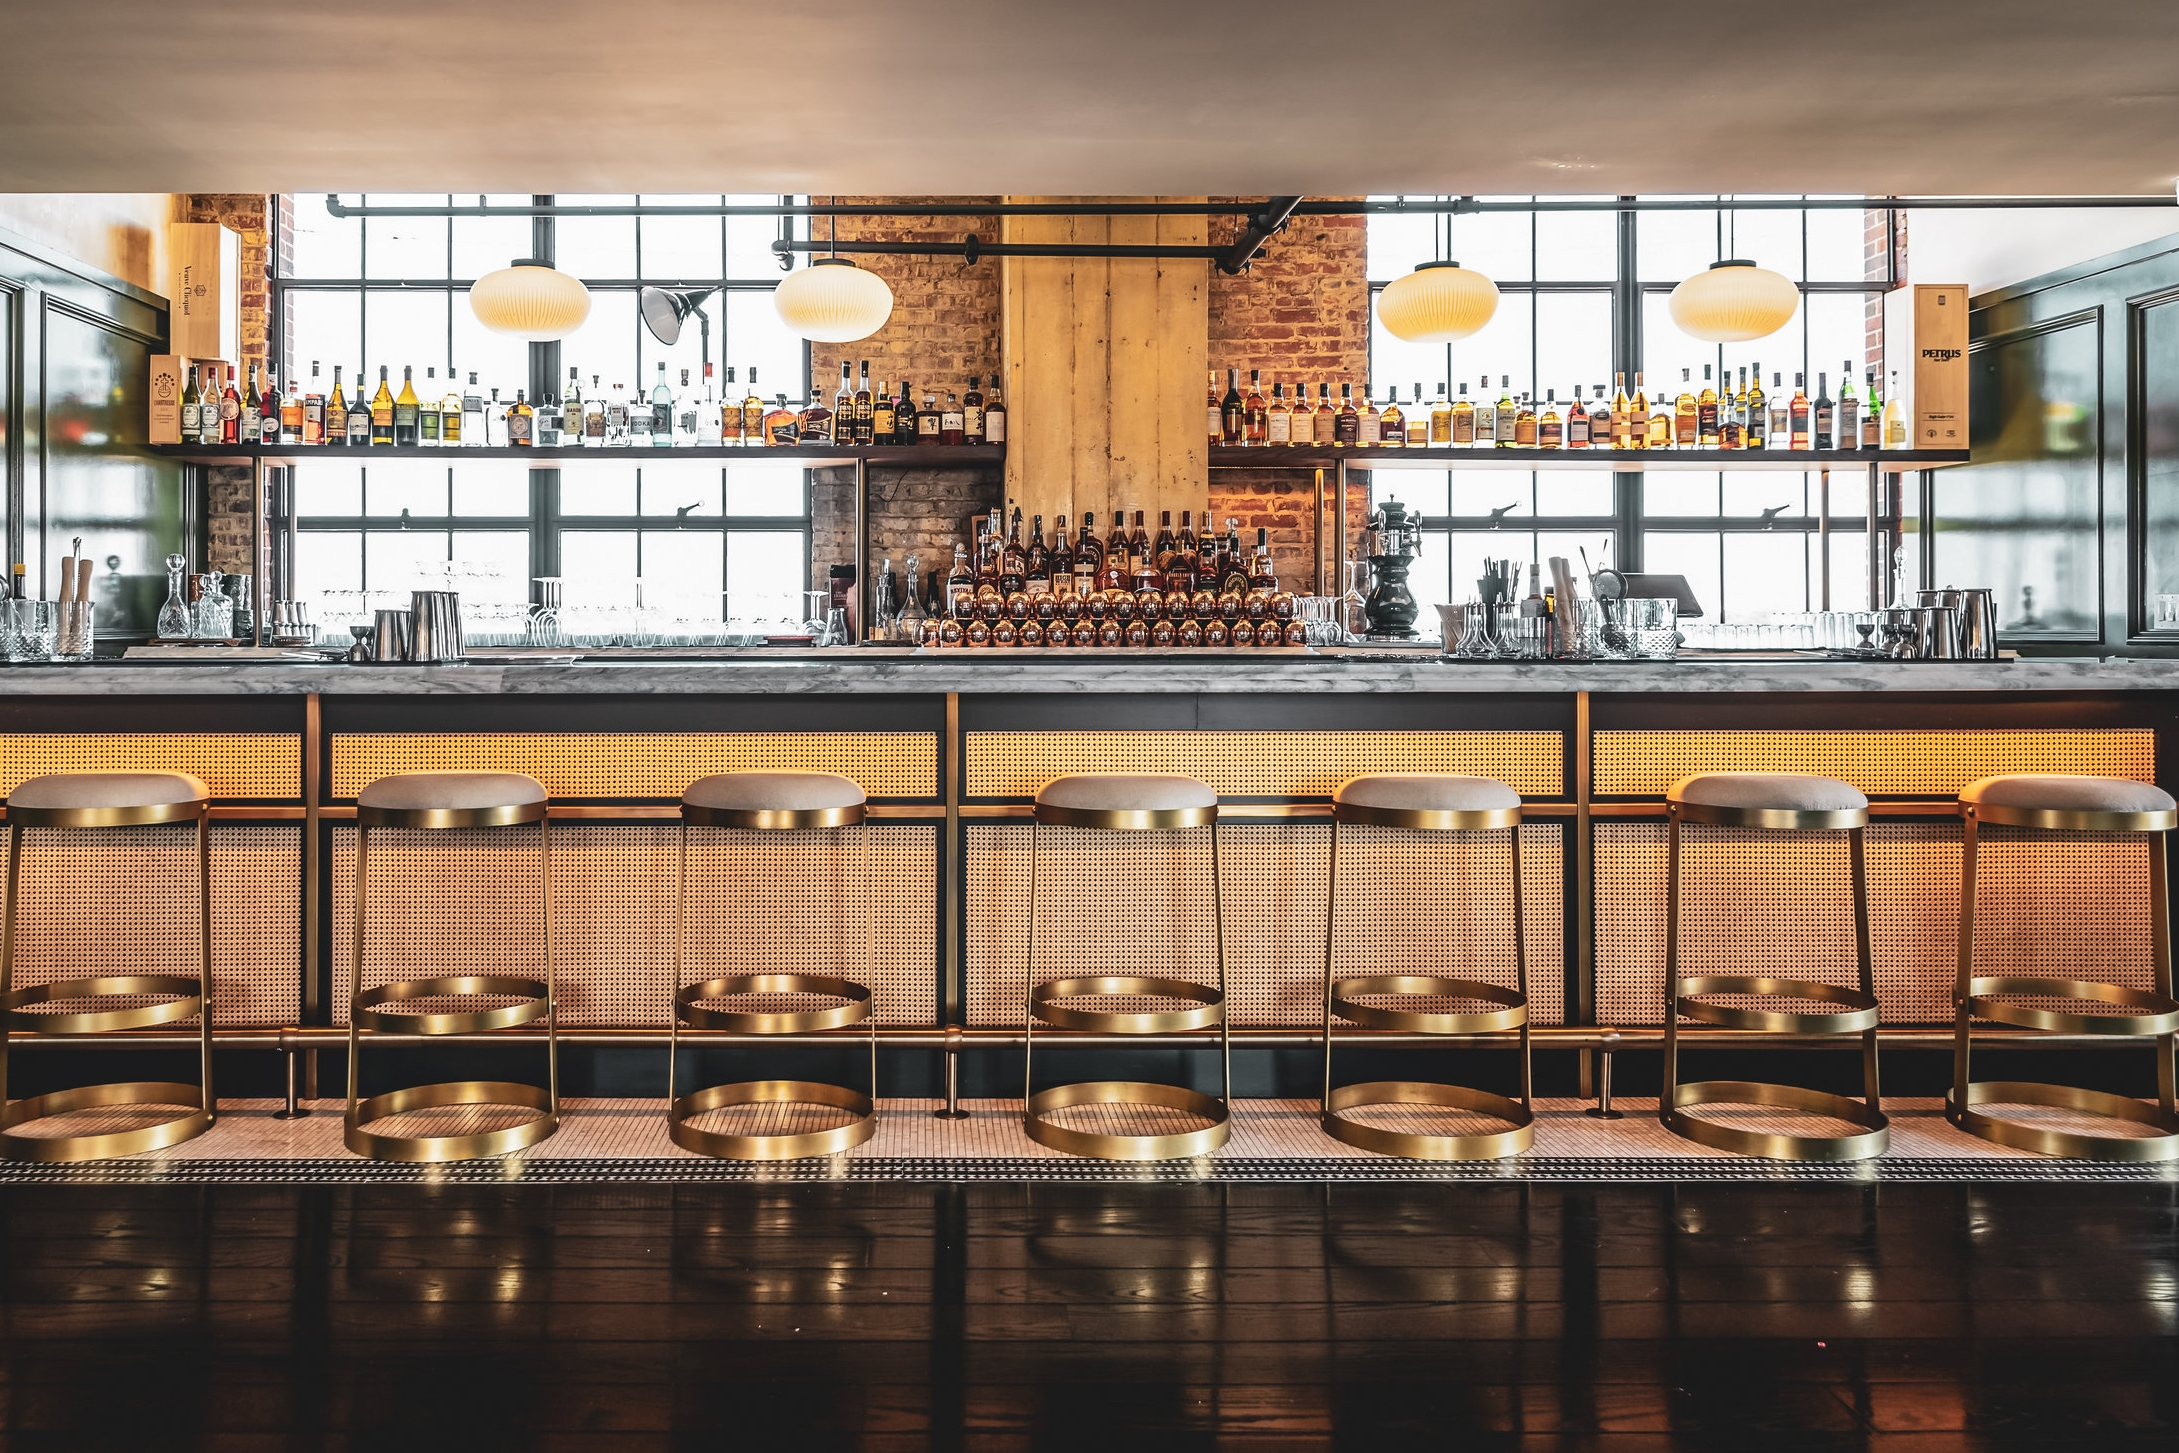 Let's Socialize - A social club in thePonce City Market tower